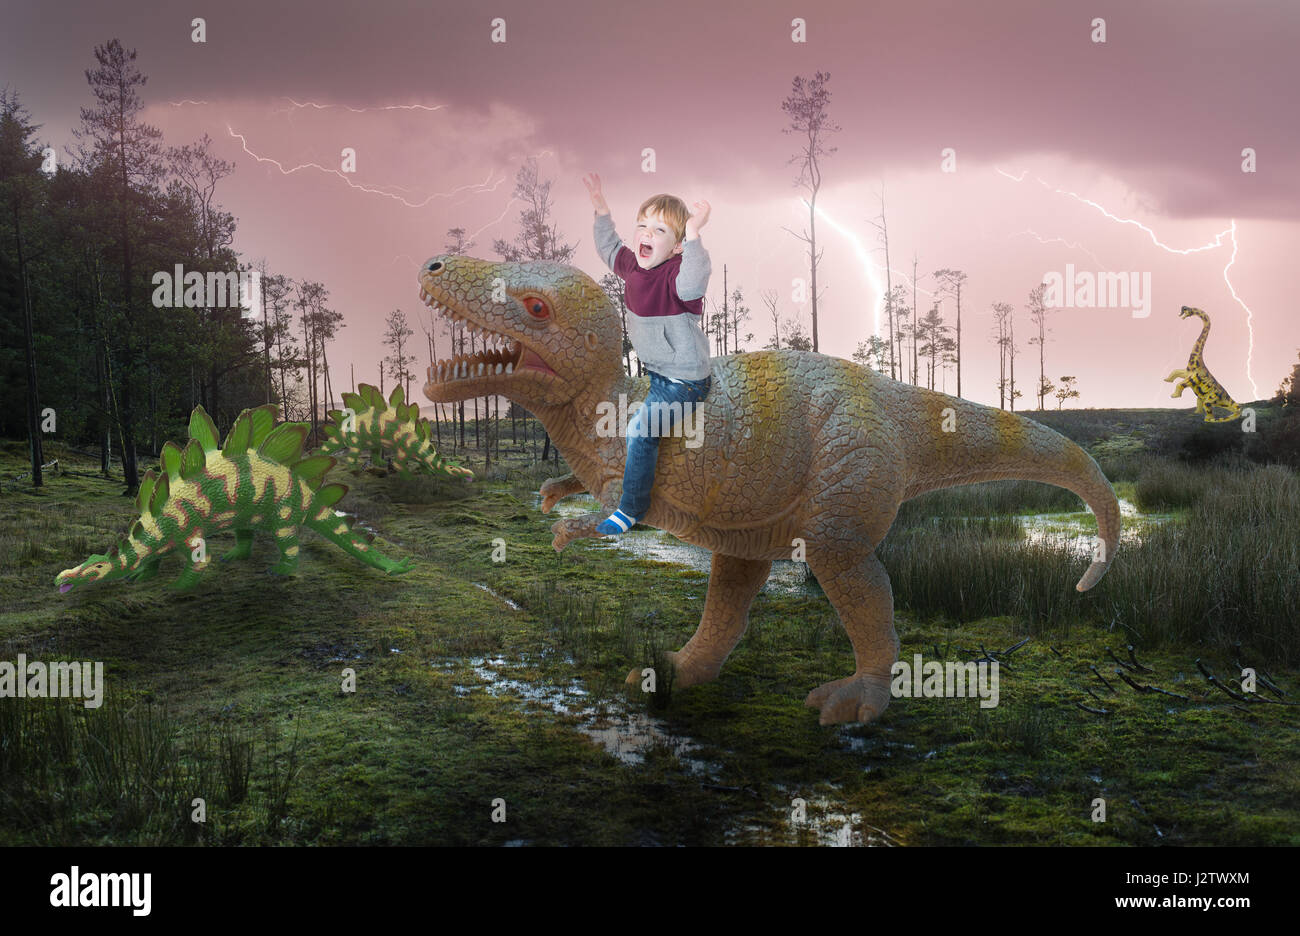 Fantasy a little boy riding on a dinosaur - Stock Image